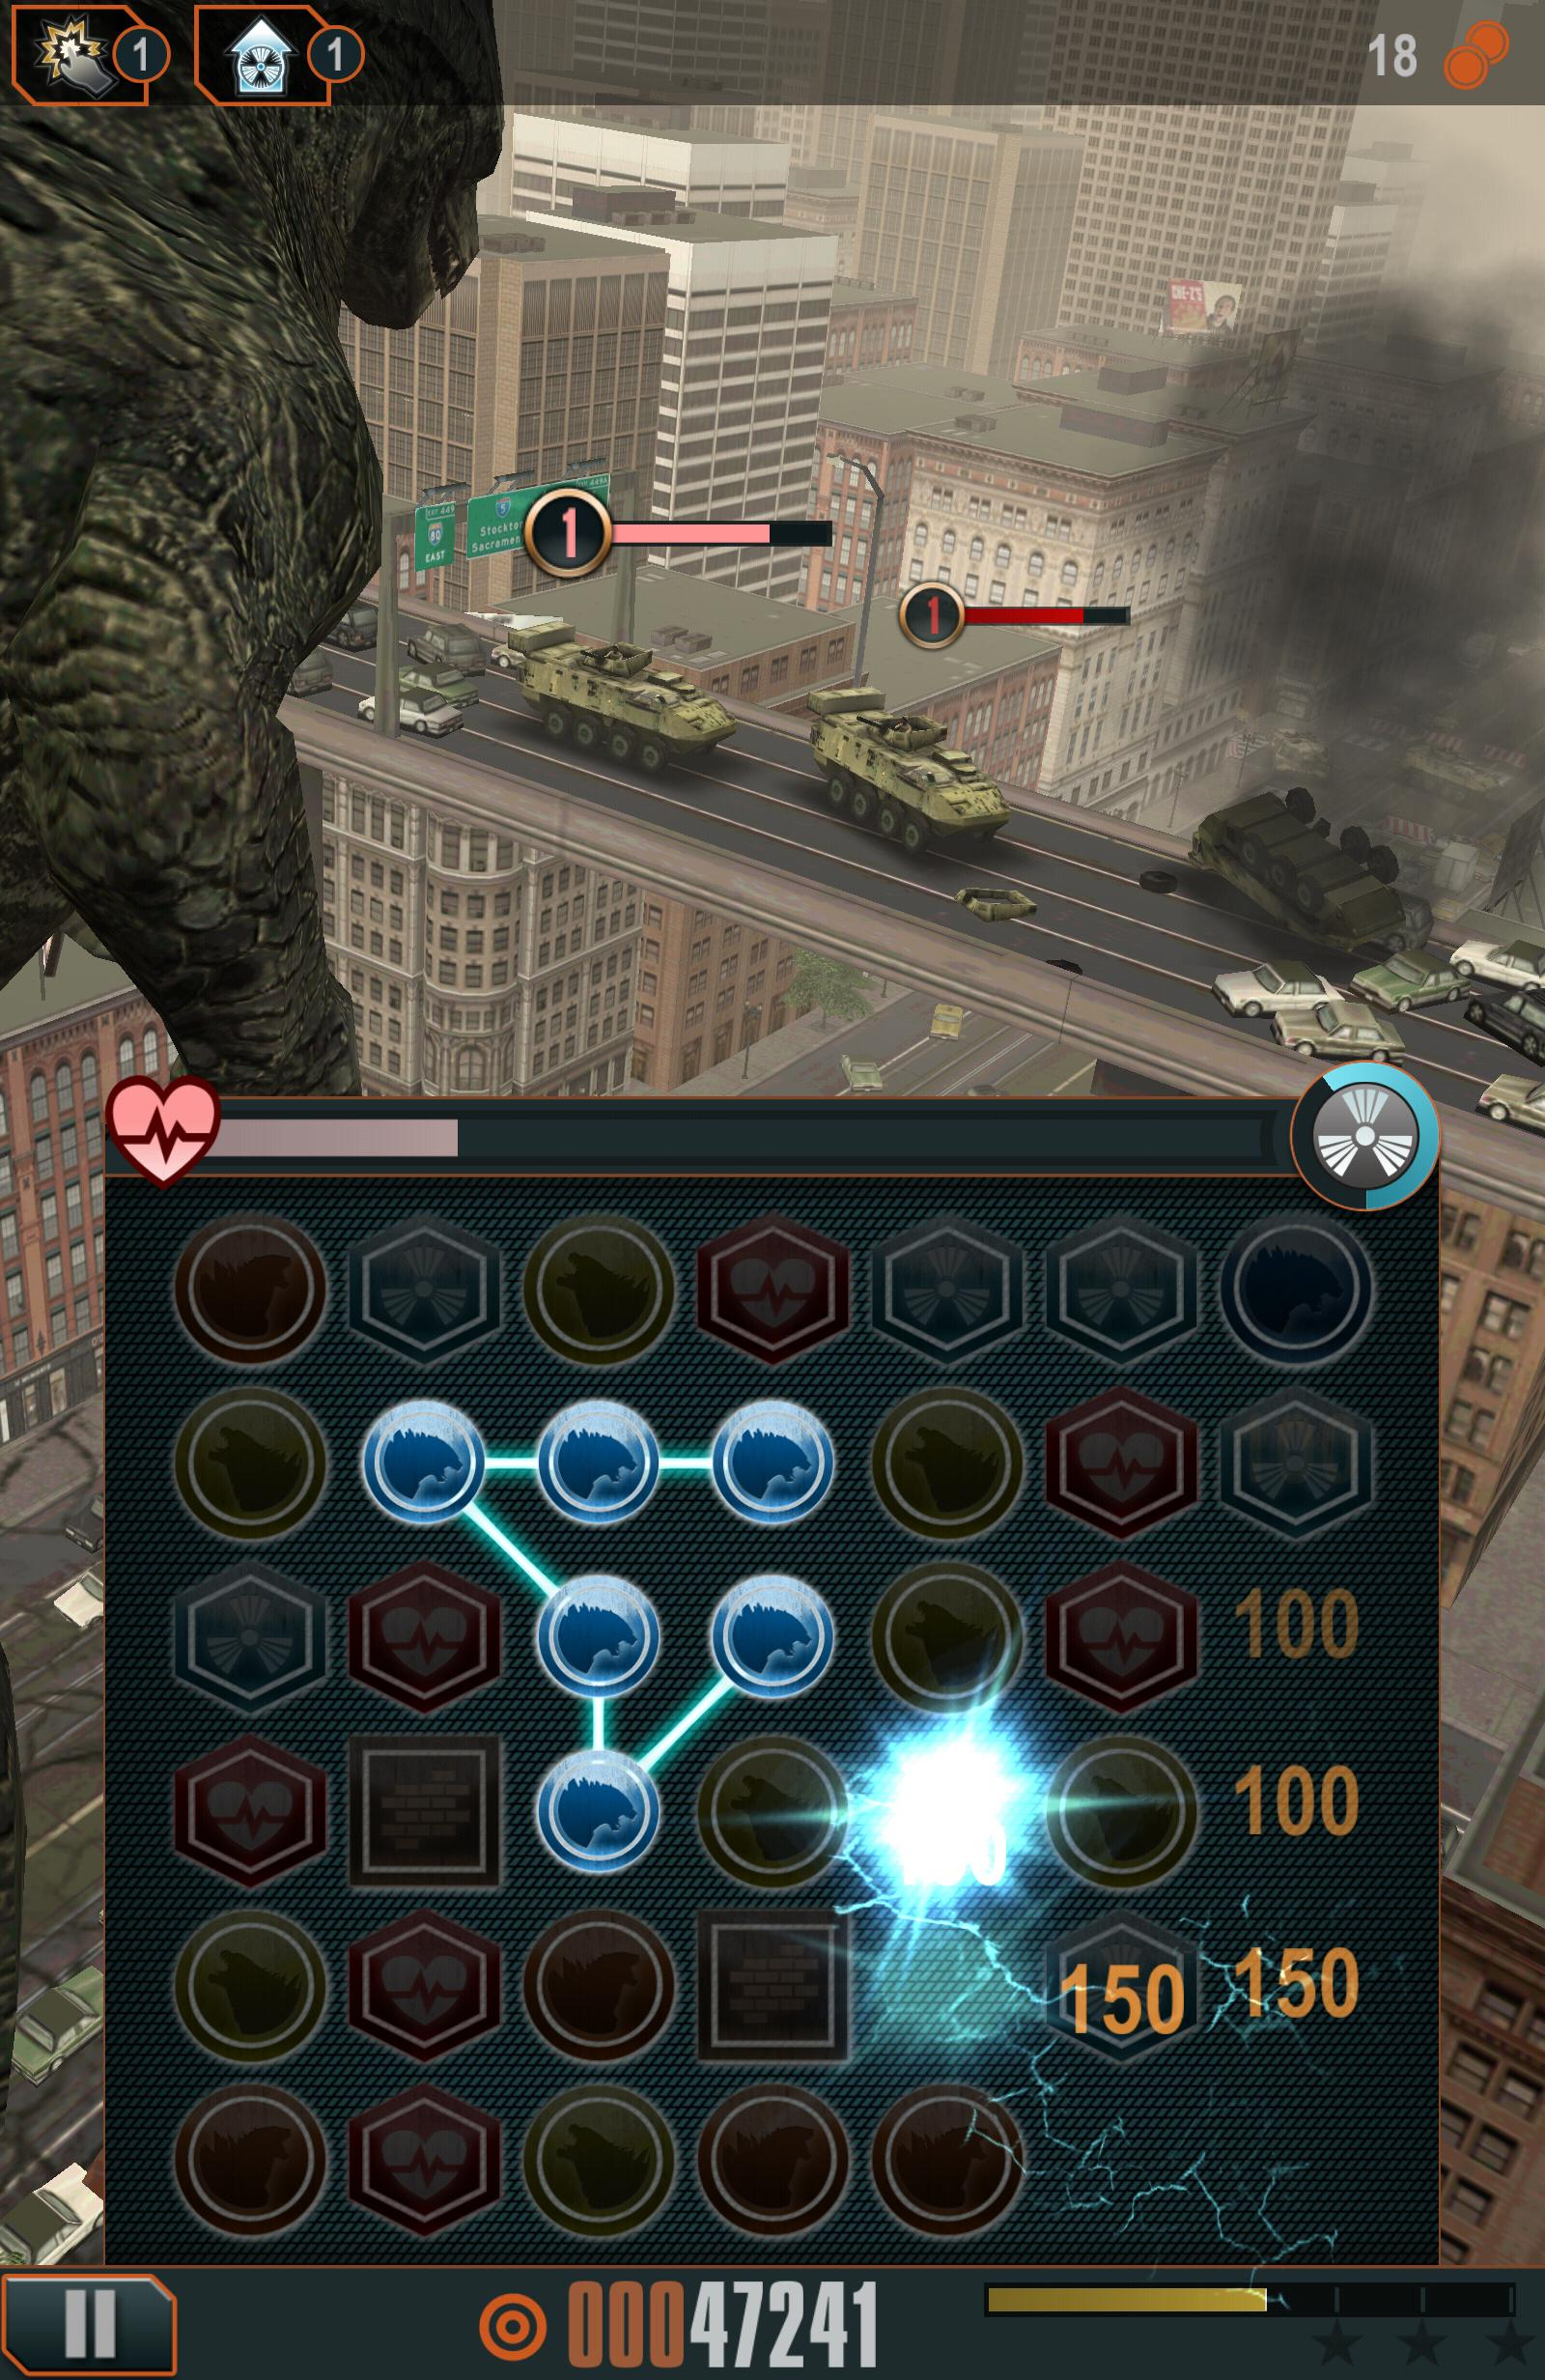 Godzilla - Smash3 screenshot #15